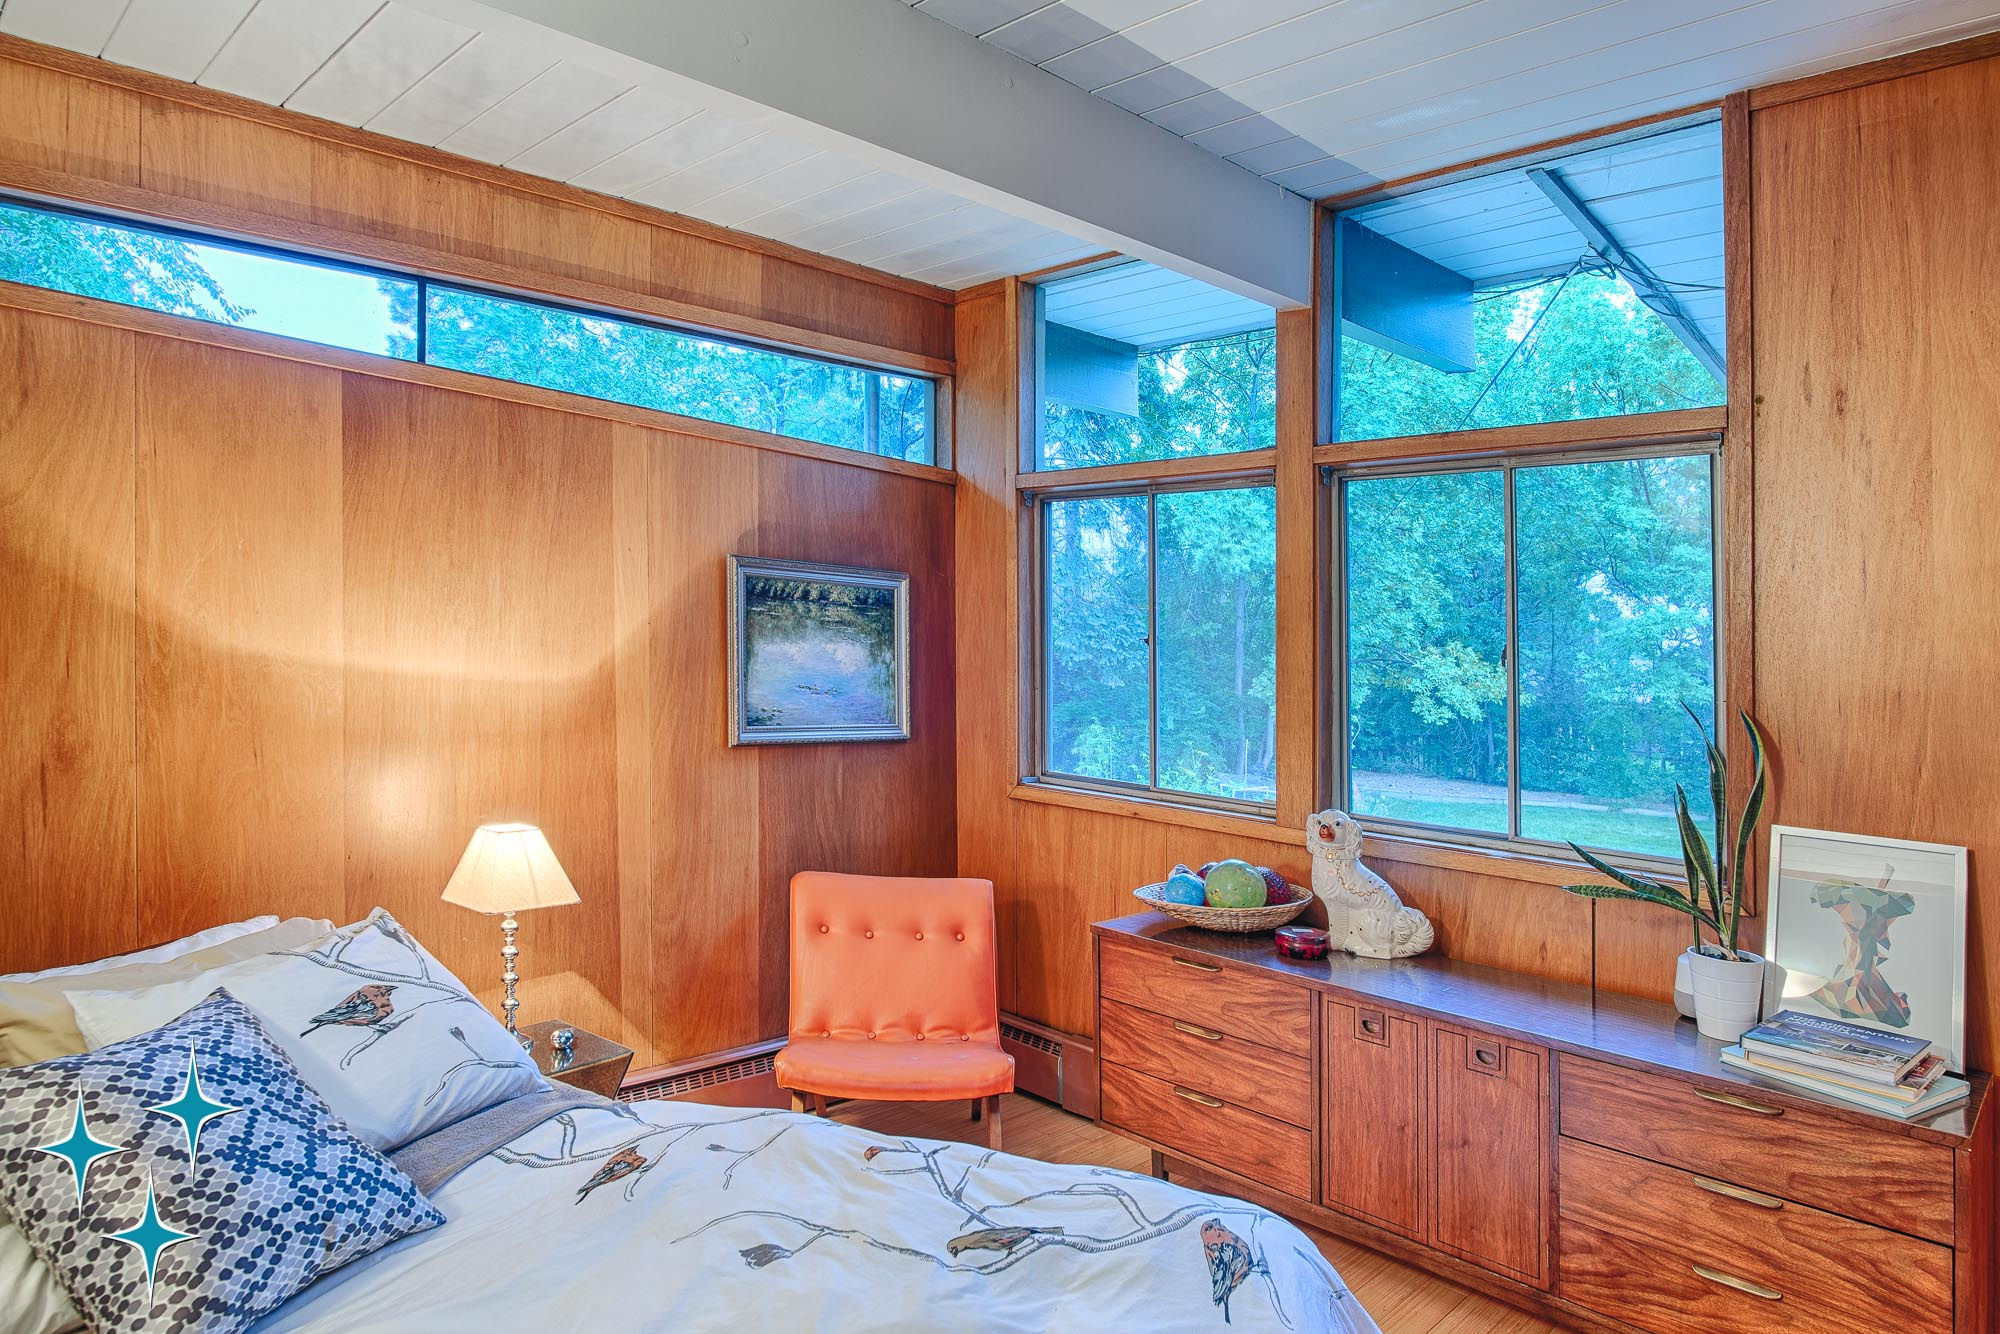 A wood-paneled bedroom at 4920 E Vassar Lane in Dahlia Acres, Denver featuring large windows with transoms and east-facing clerestory window. Designed by Frenchie Gratts and offered by Adrian Kinney, Broker Associate, Resident Realty South Metro